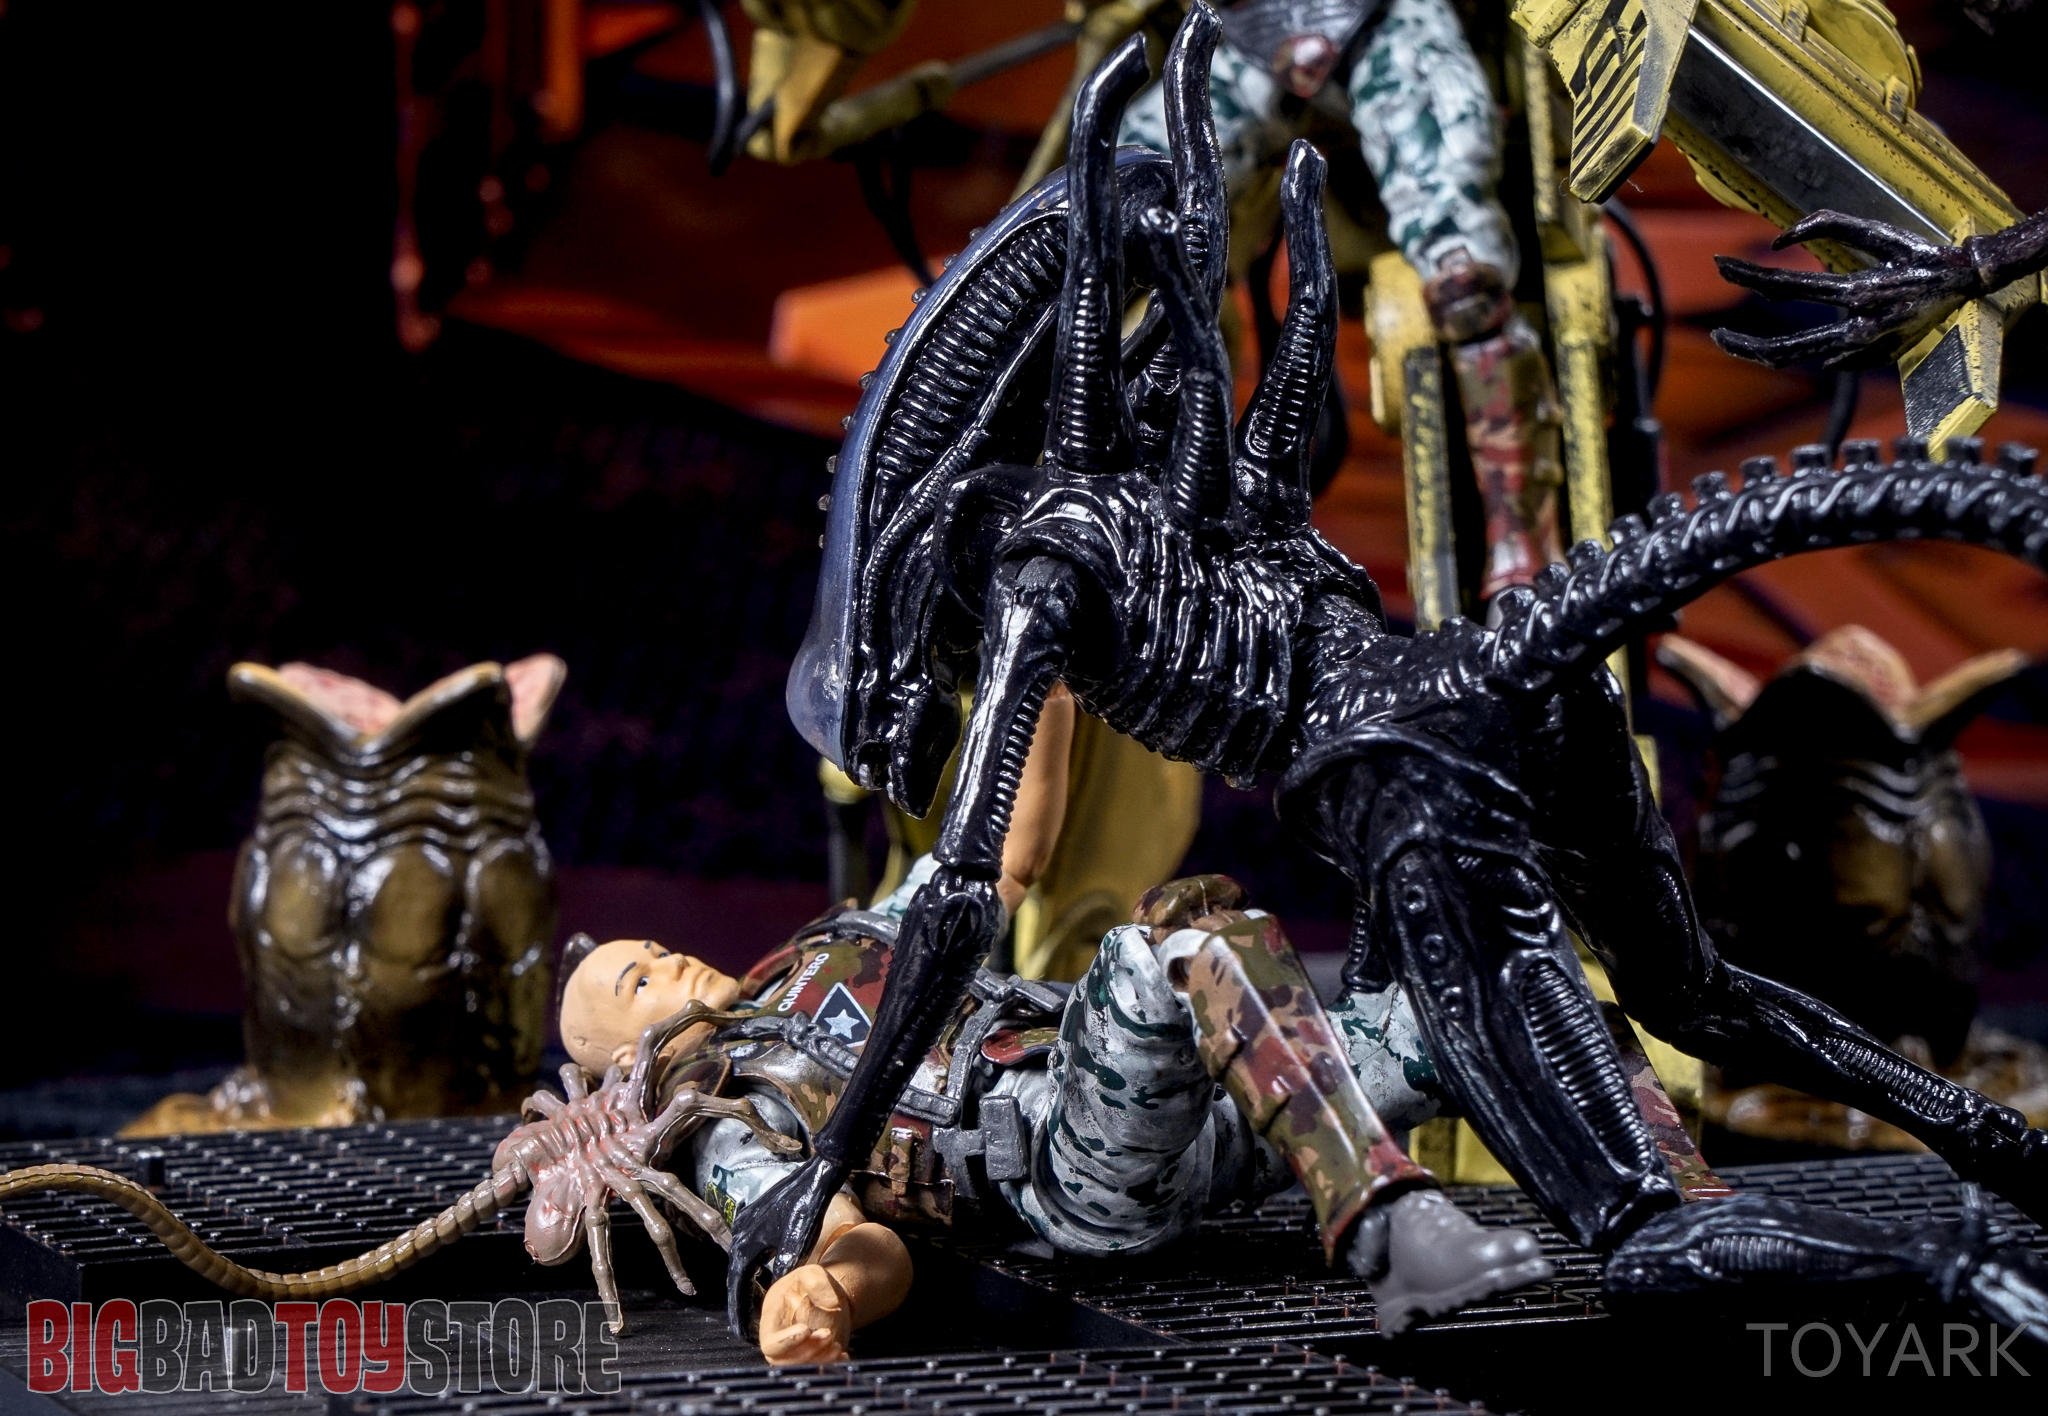 http://news.toyark.com/wp-content/uploads/sites/4/2016/07/Hiya-Toys-Aliens-158.jpg